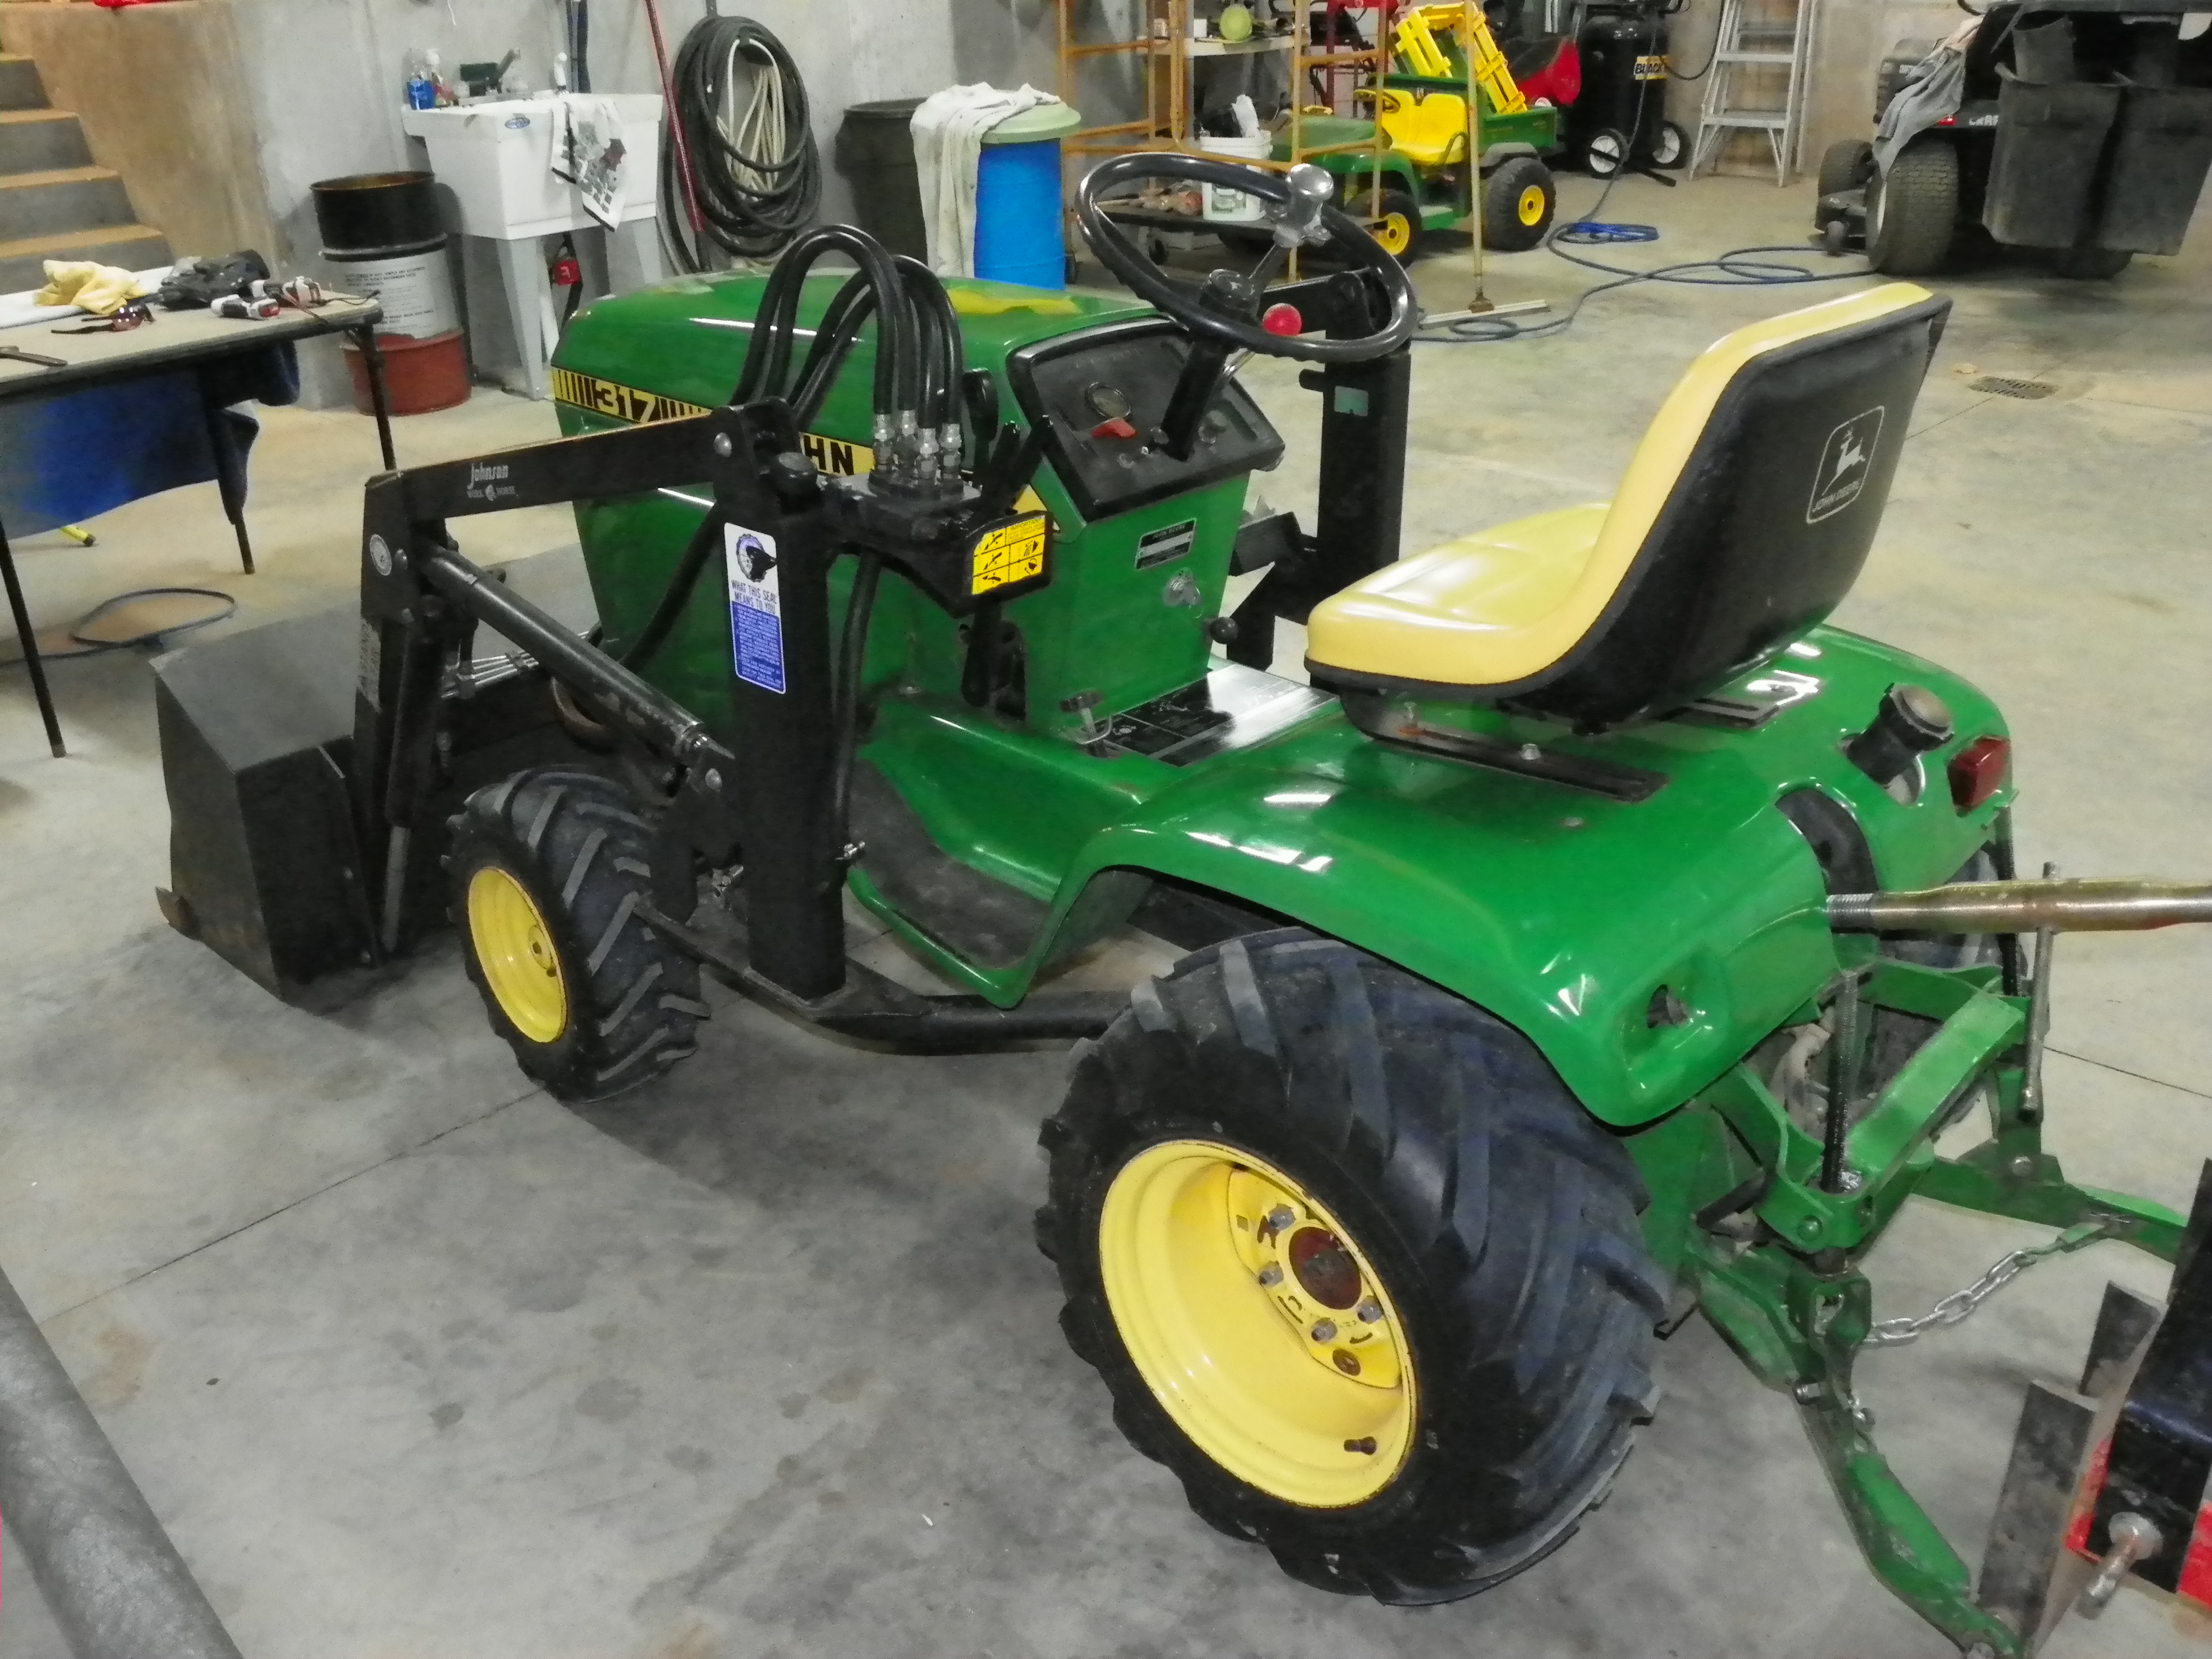 bush hog wiring diagram with John Deere 317 Tractor Schematics on Scag Ignition Switch Diagram in addition Big Dog Wiring Diagram likewise John Deere Gator Xuv 625i 825i 855d Full Cab Enclosure With Lexan Hard Windshield furthermore Free Download Program Cub Cadet 128 Manual additionally Showthread.